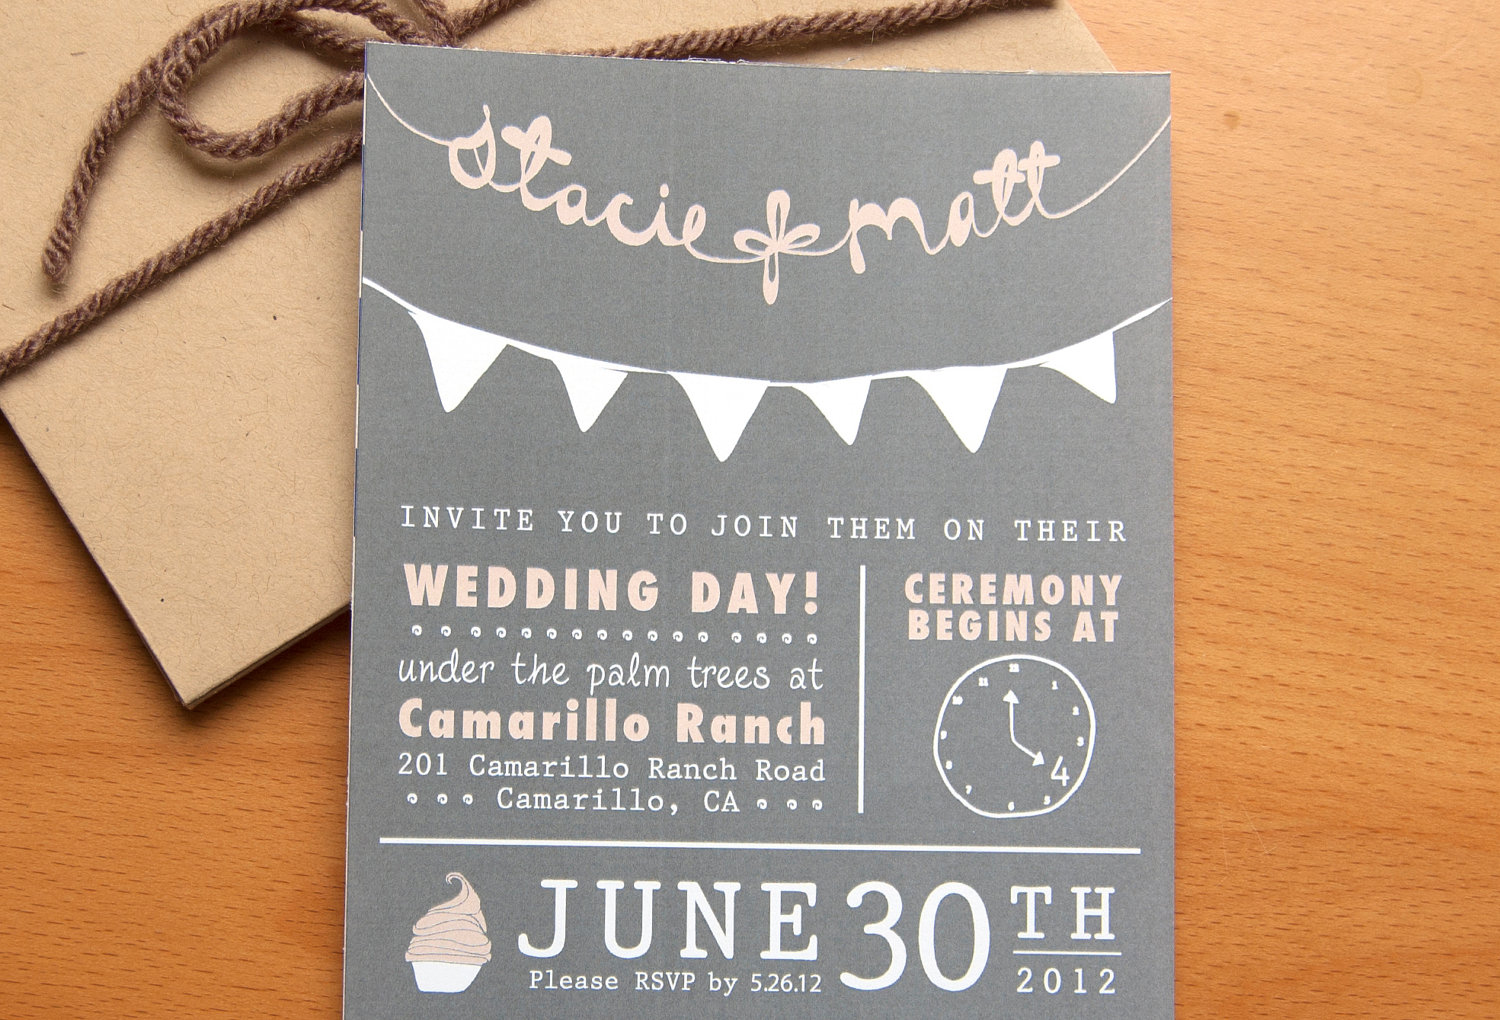 Budget-wedding-ideas-diy-invitations-etsy-weddings-chalkboard-chic.original